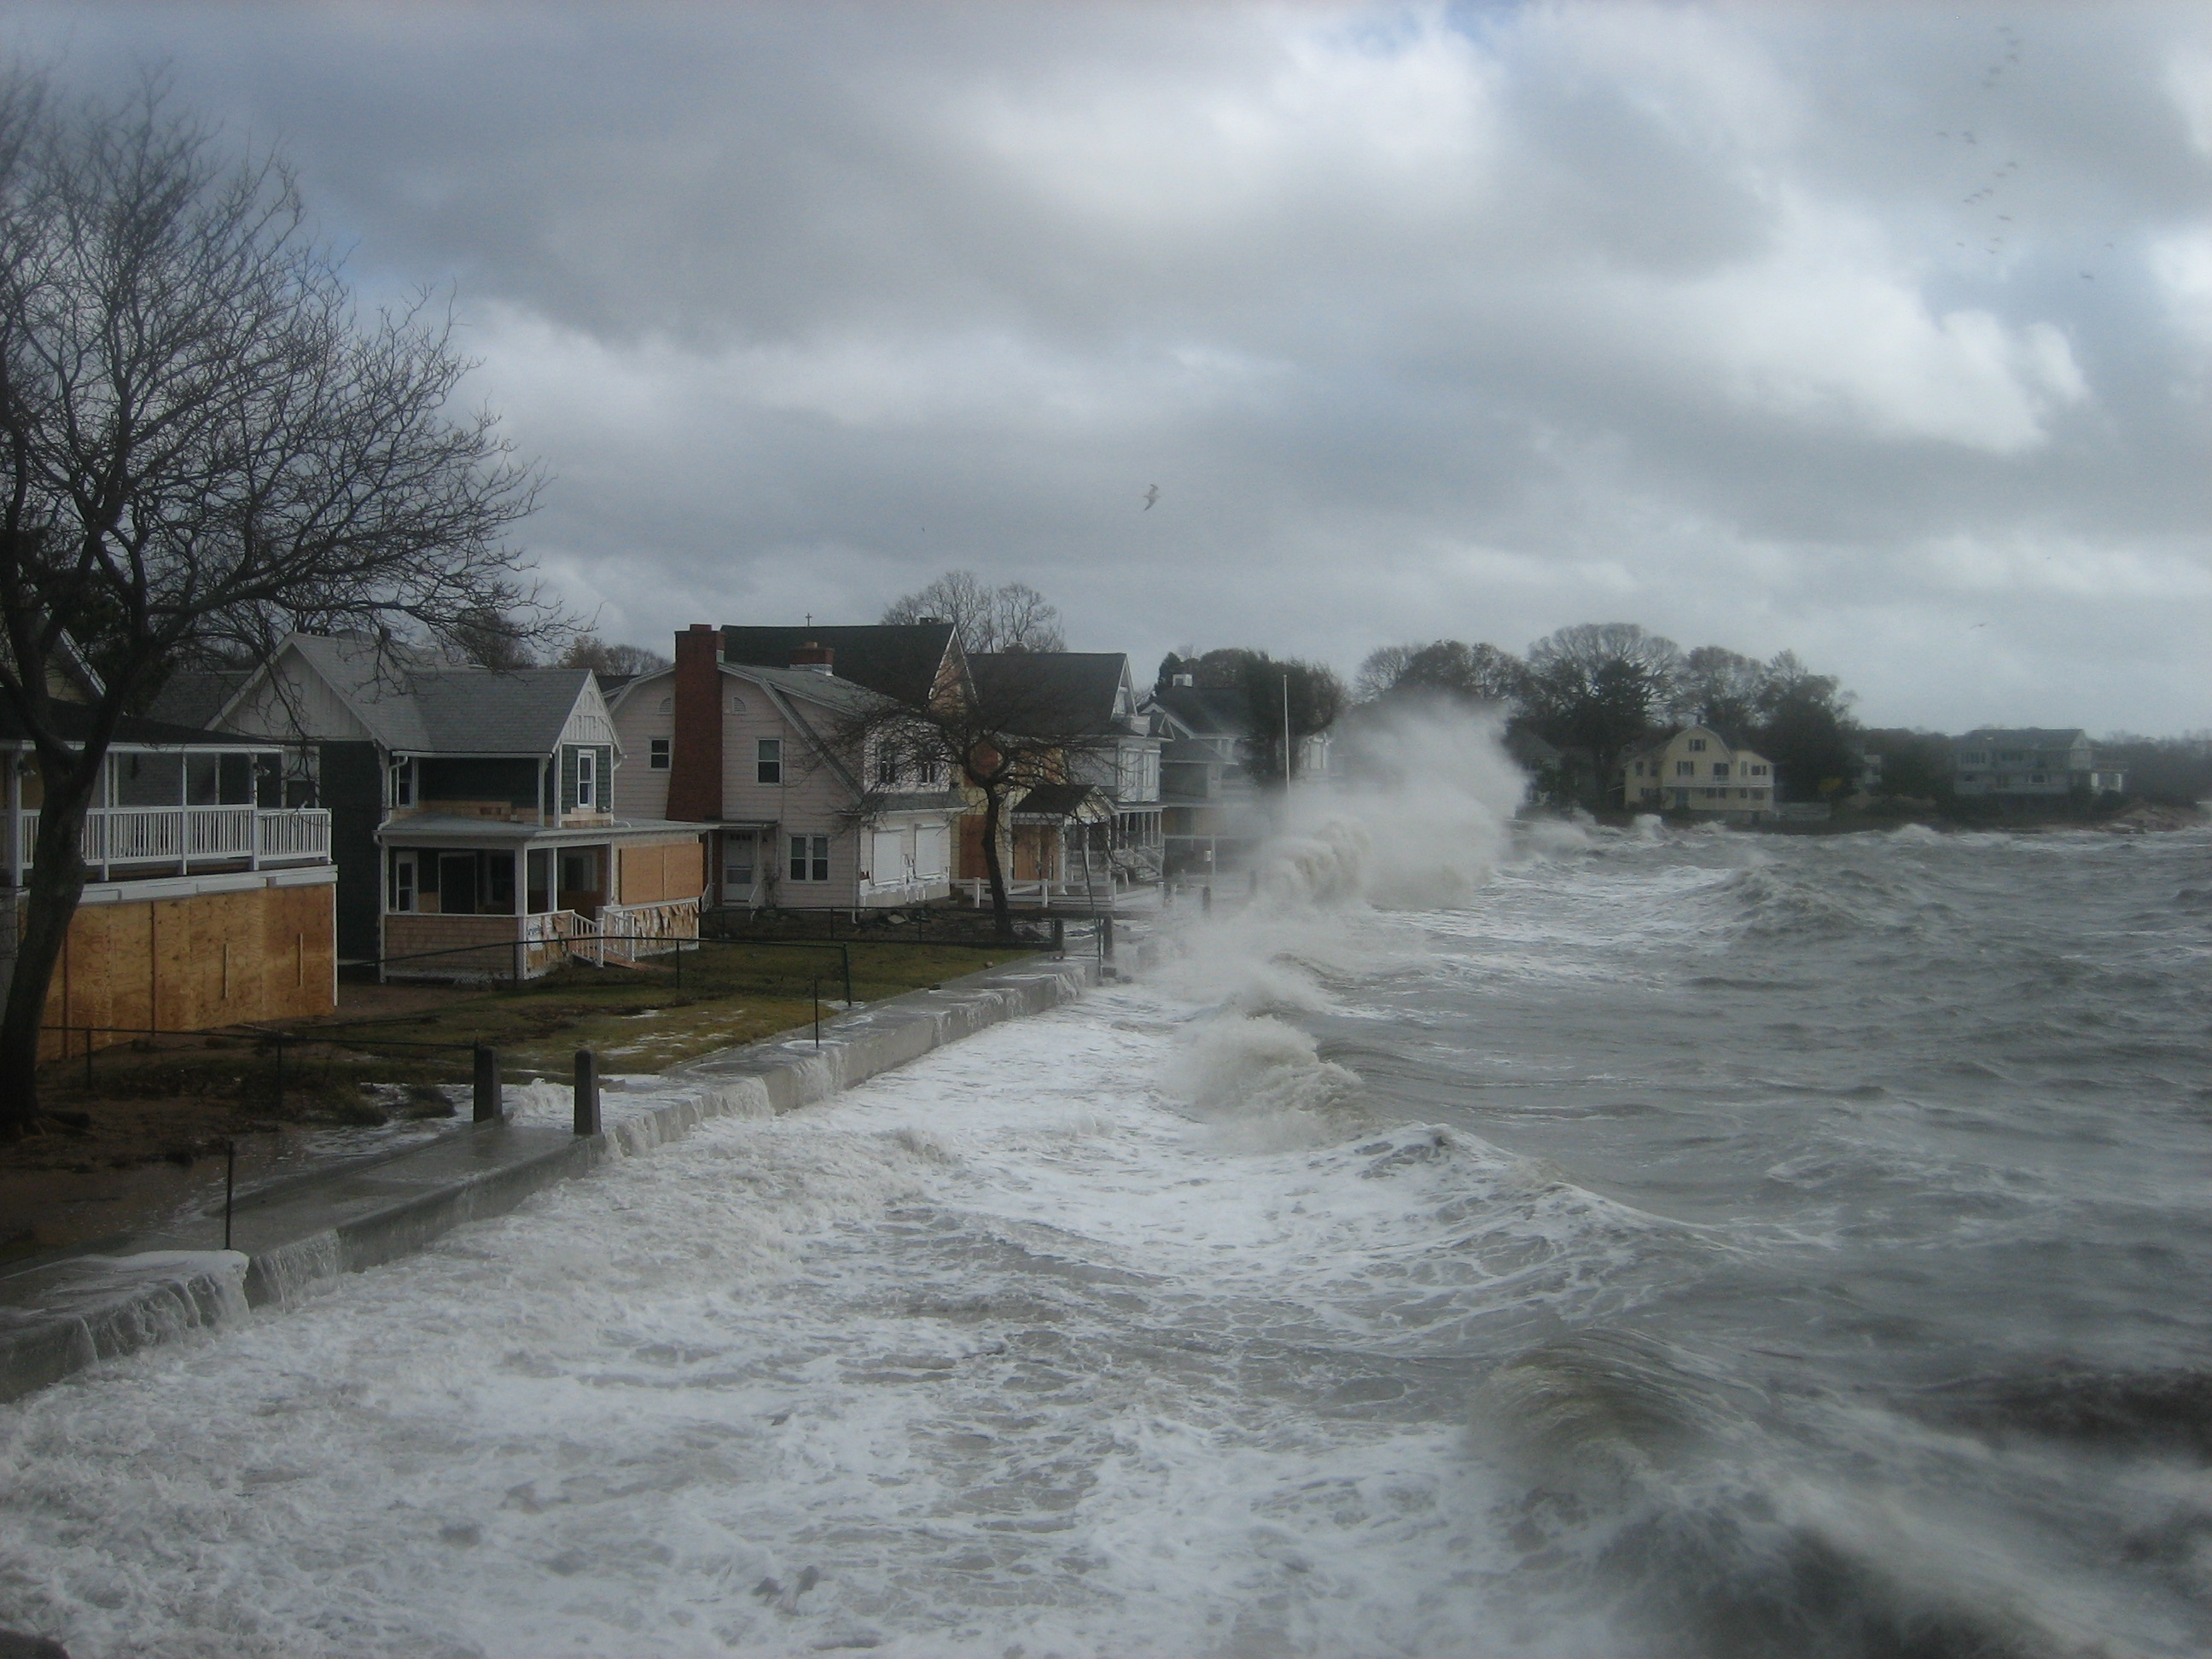 Connecticut's vanishing shoreline: One storm away from disaster